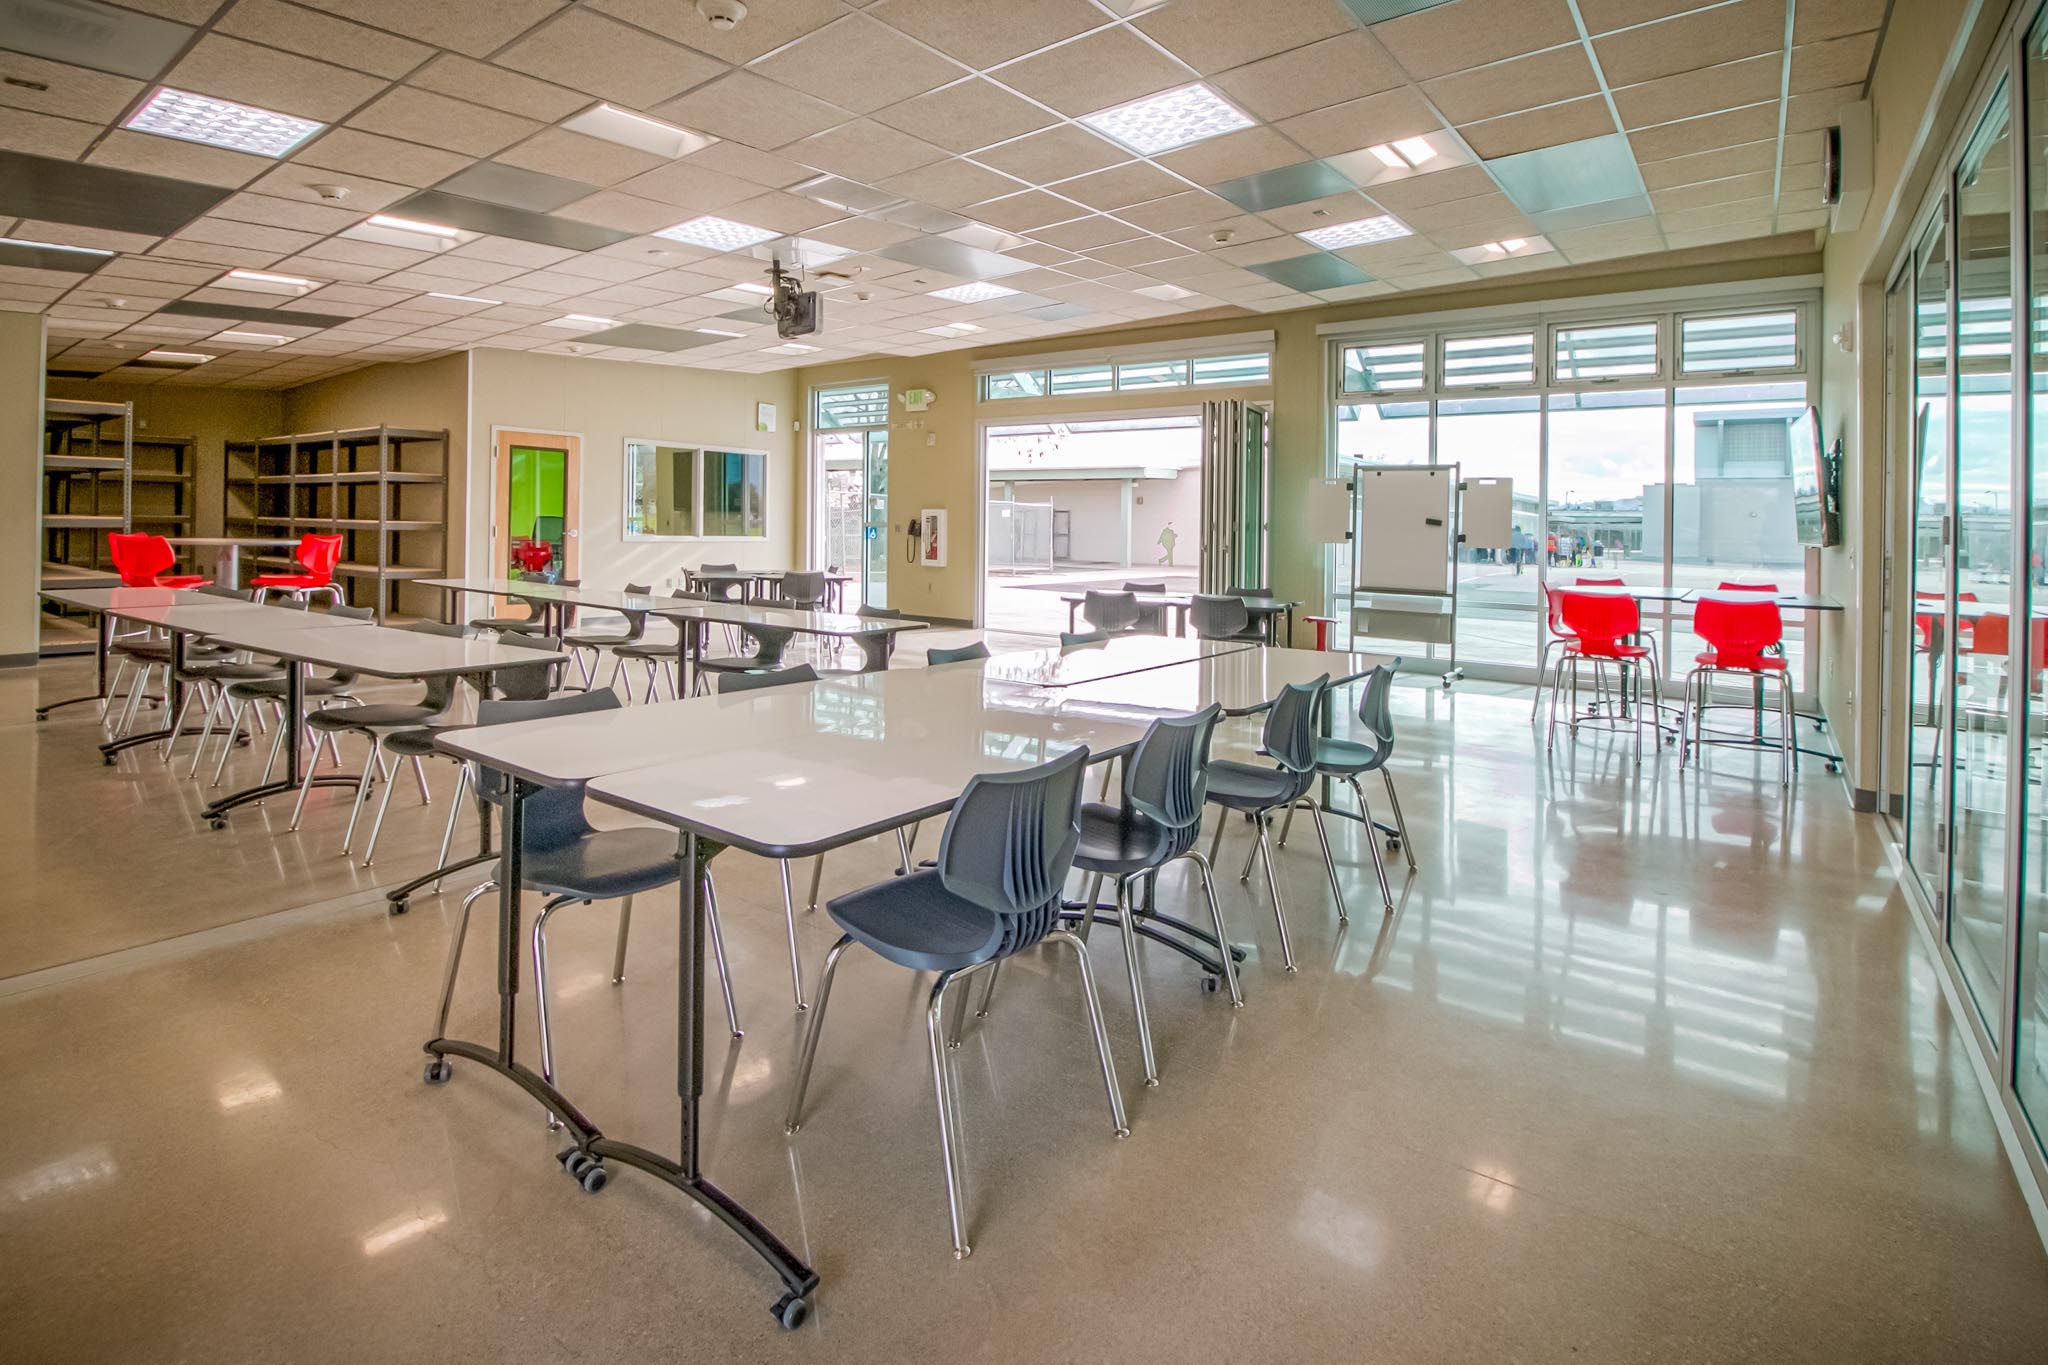 STEM classroom design for 21st century learning